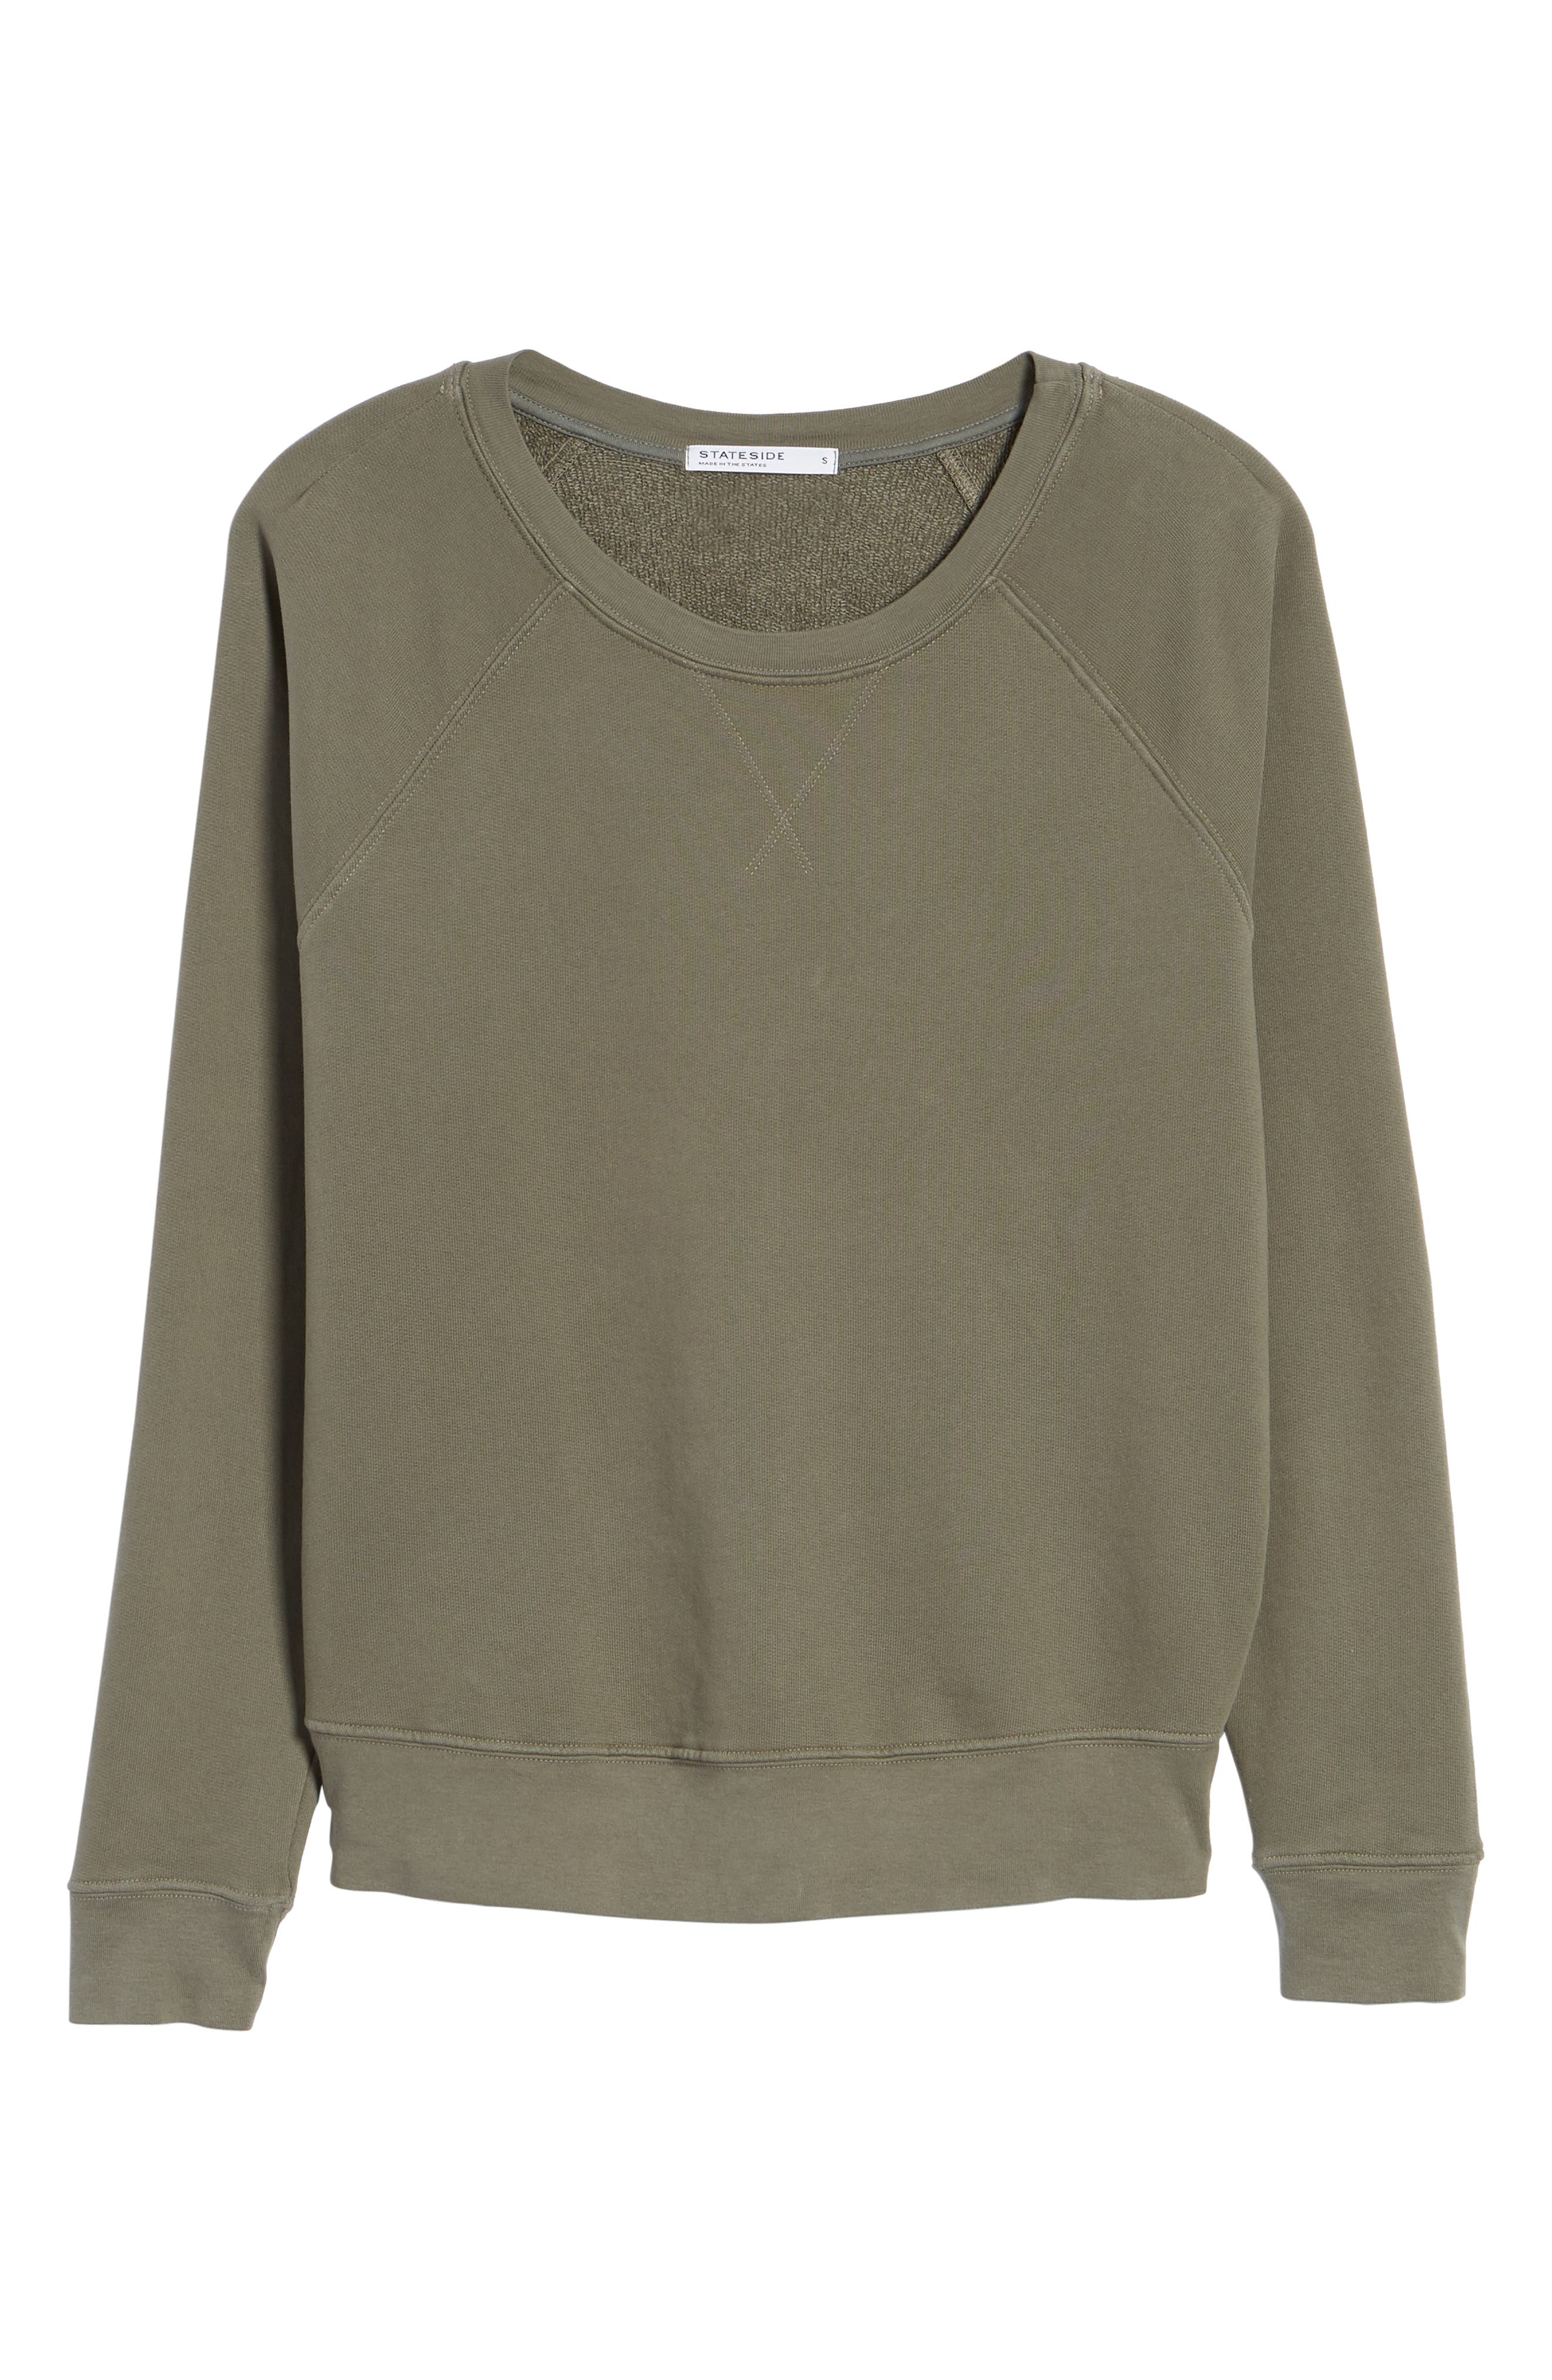 French Terry Sweatshirt,                             Alternate thumbnail 6, color,                             300